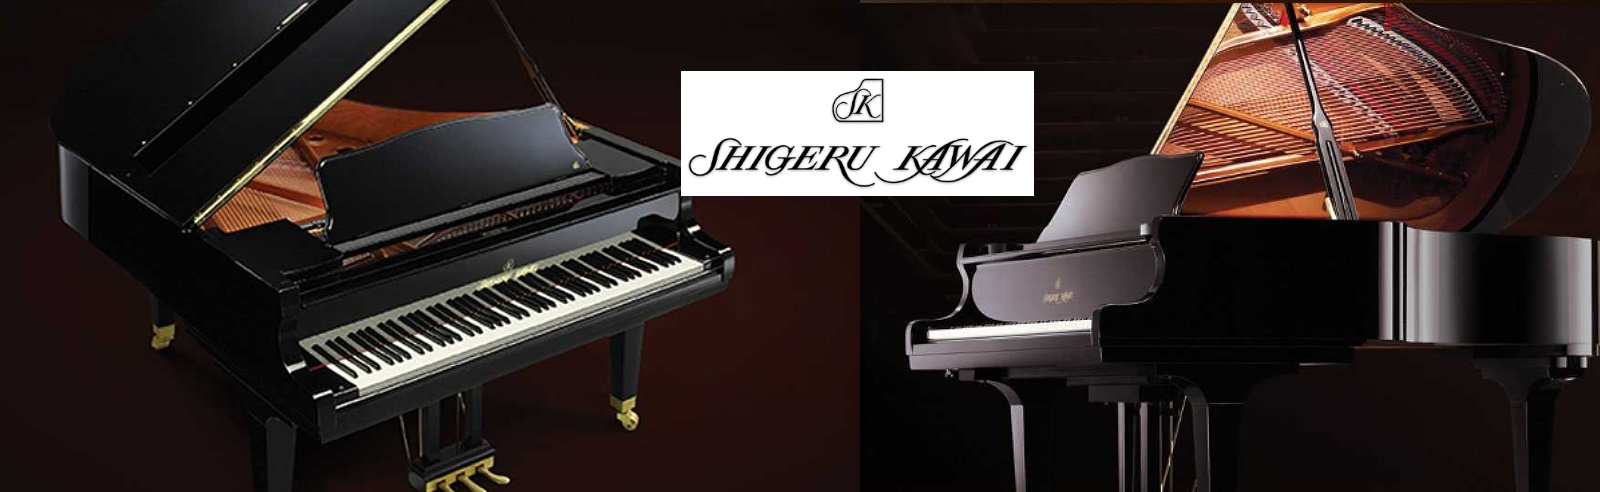 We offer the full line of Steinway, Boston & Essex pianos...